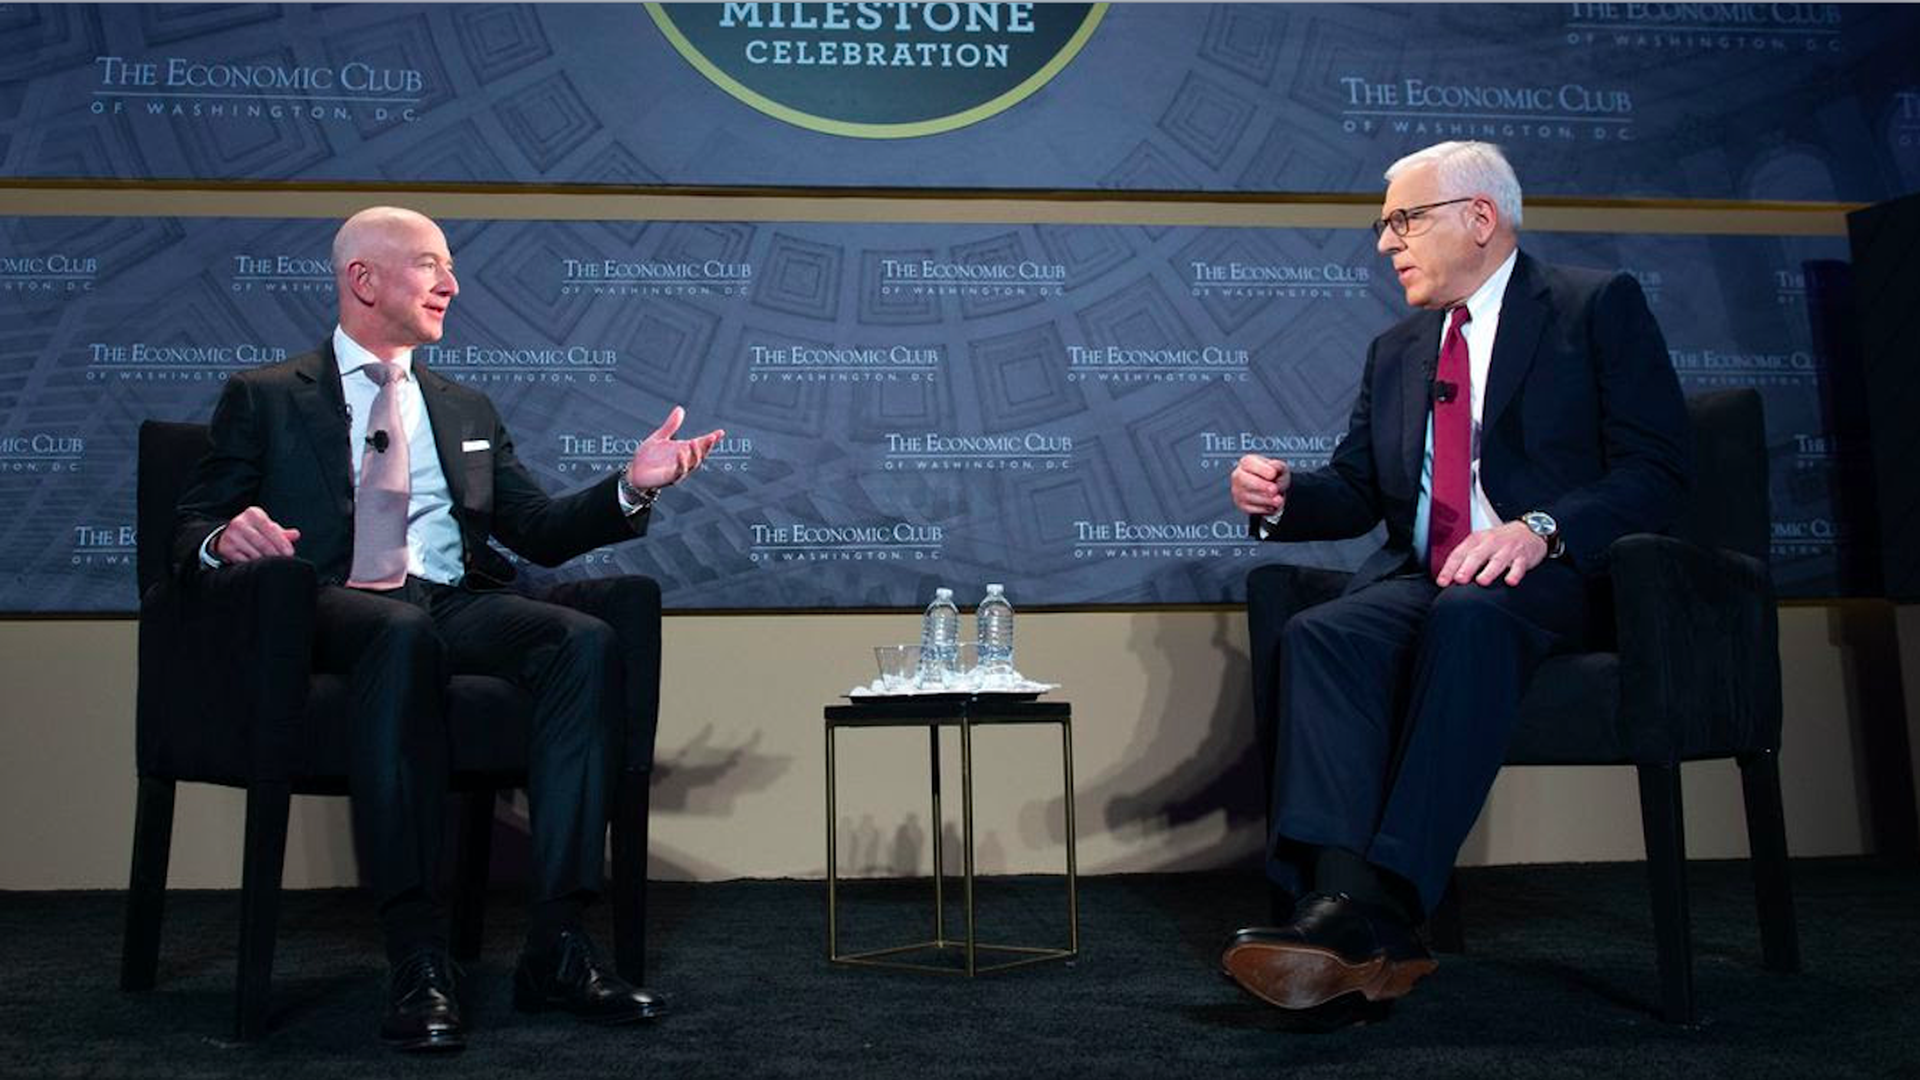 Bezos motions with his arms while talking to Rubenstein onstage